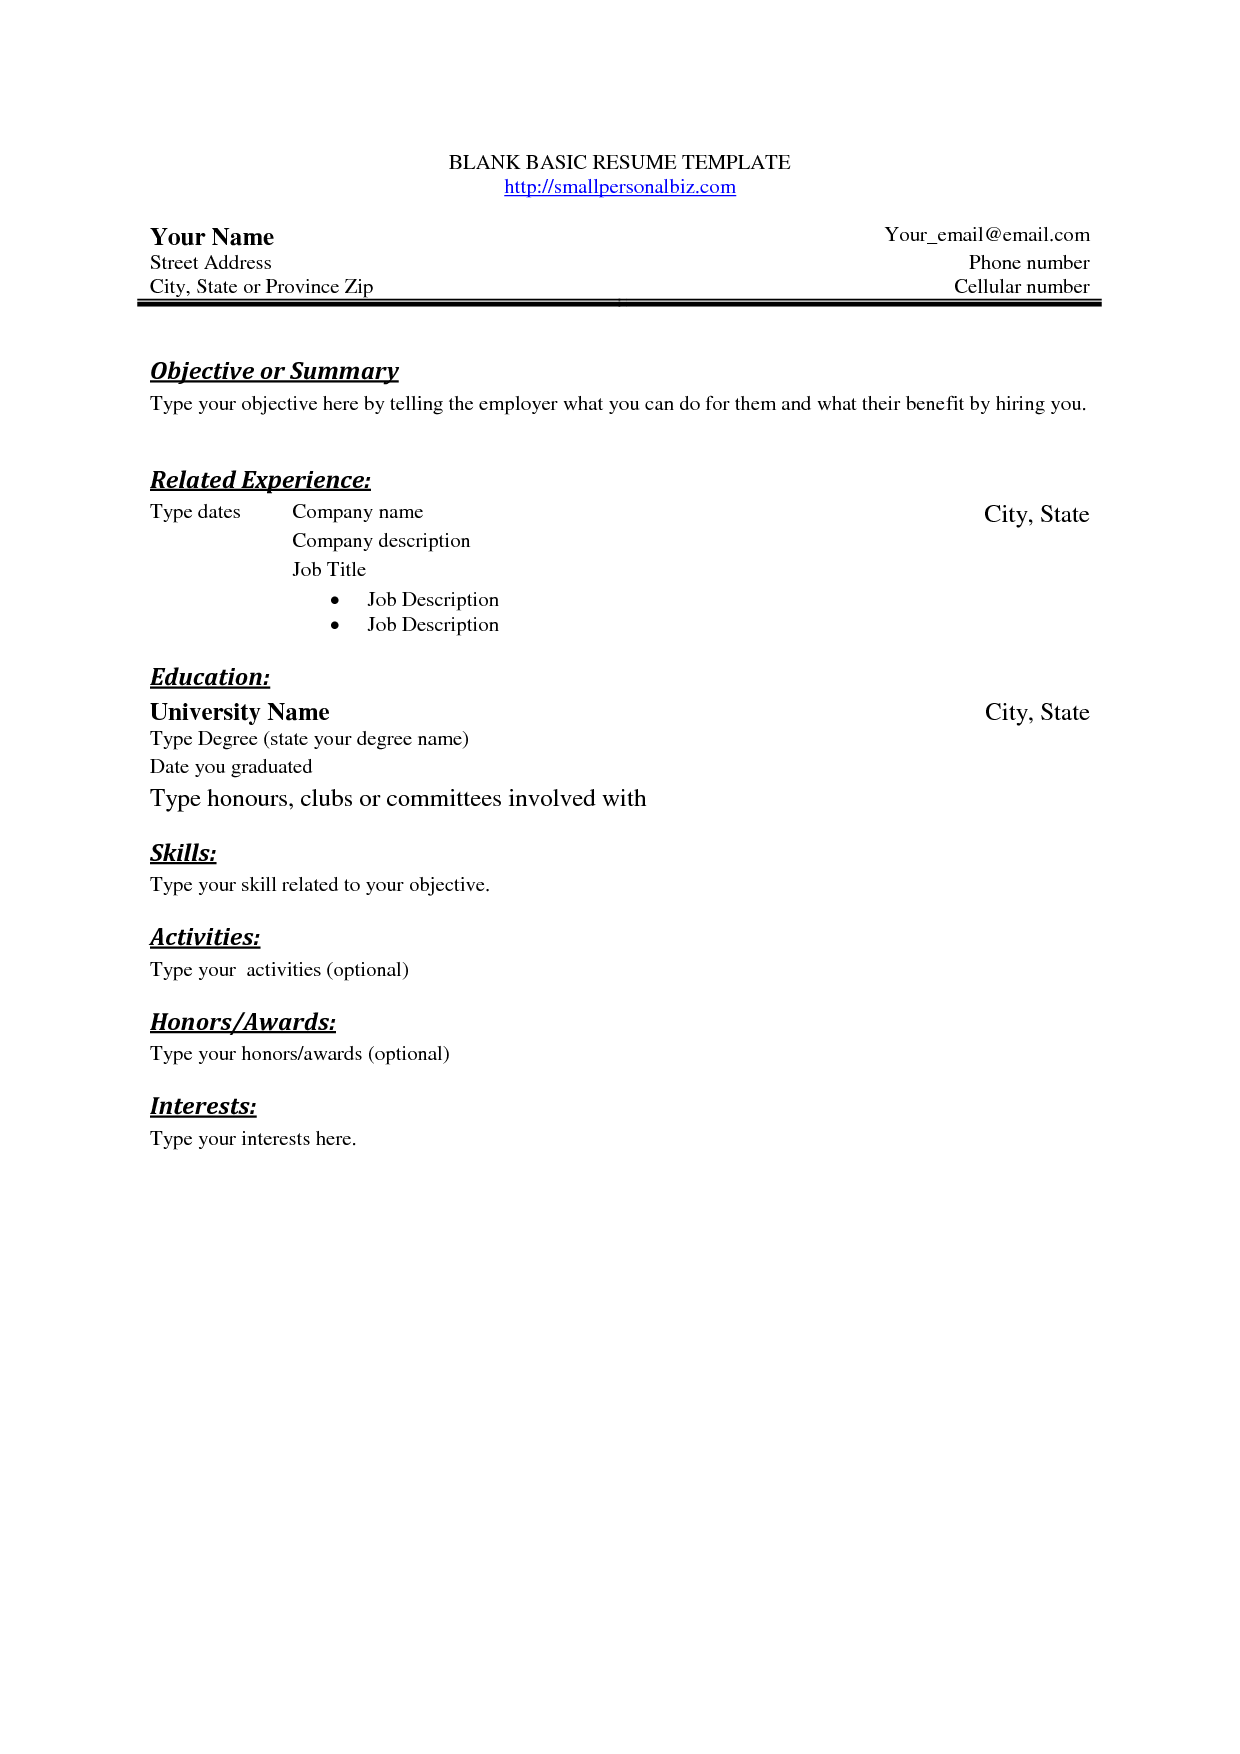 stylist and luxury simple resume layout 10 free basic blank resume template resume example resume - Job Resume Templates